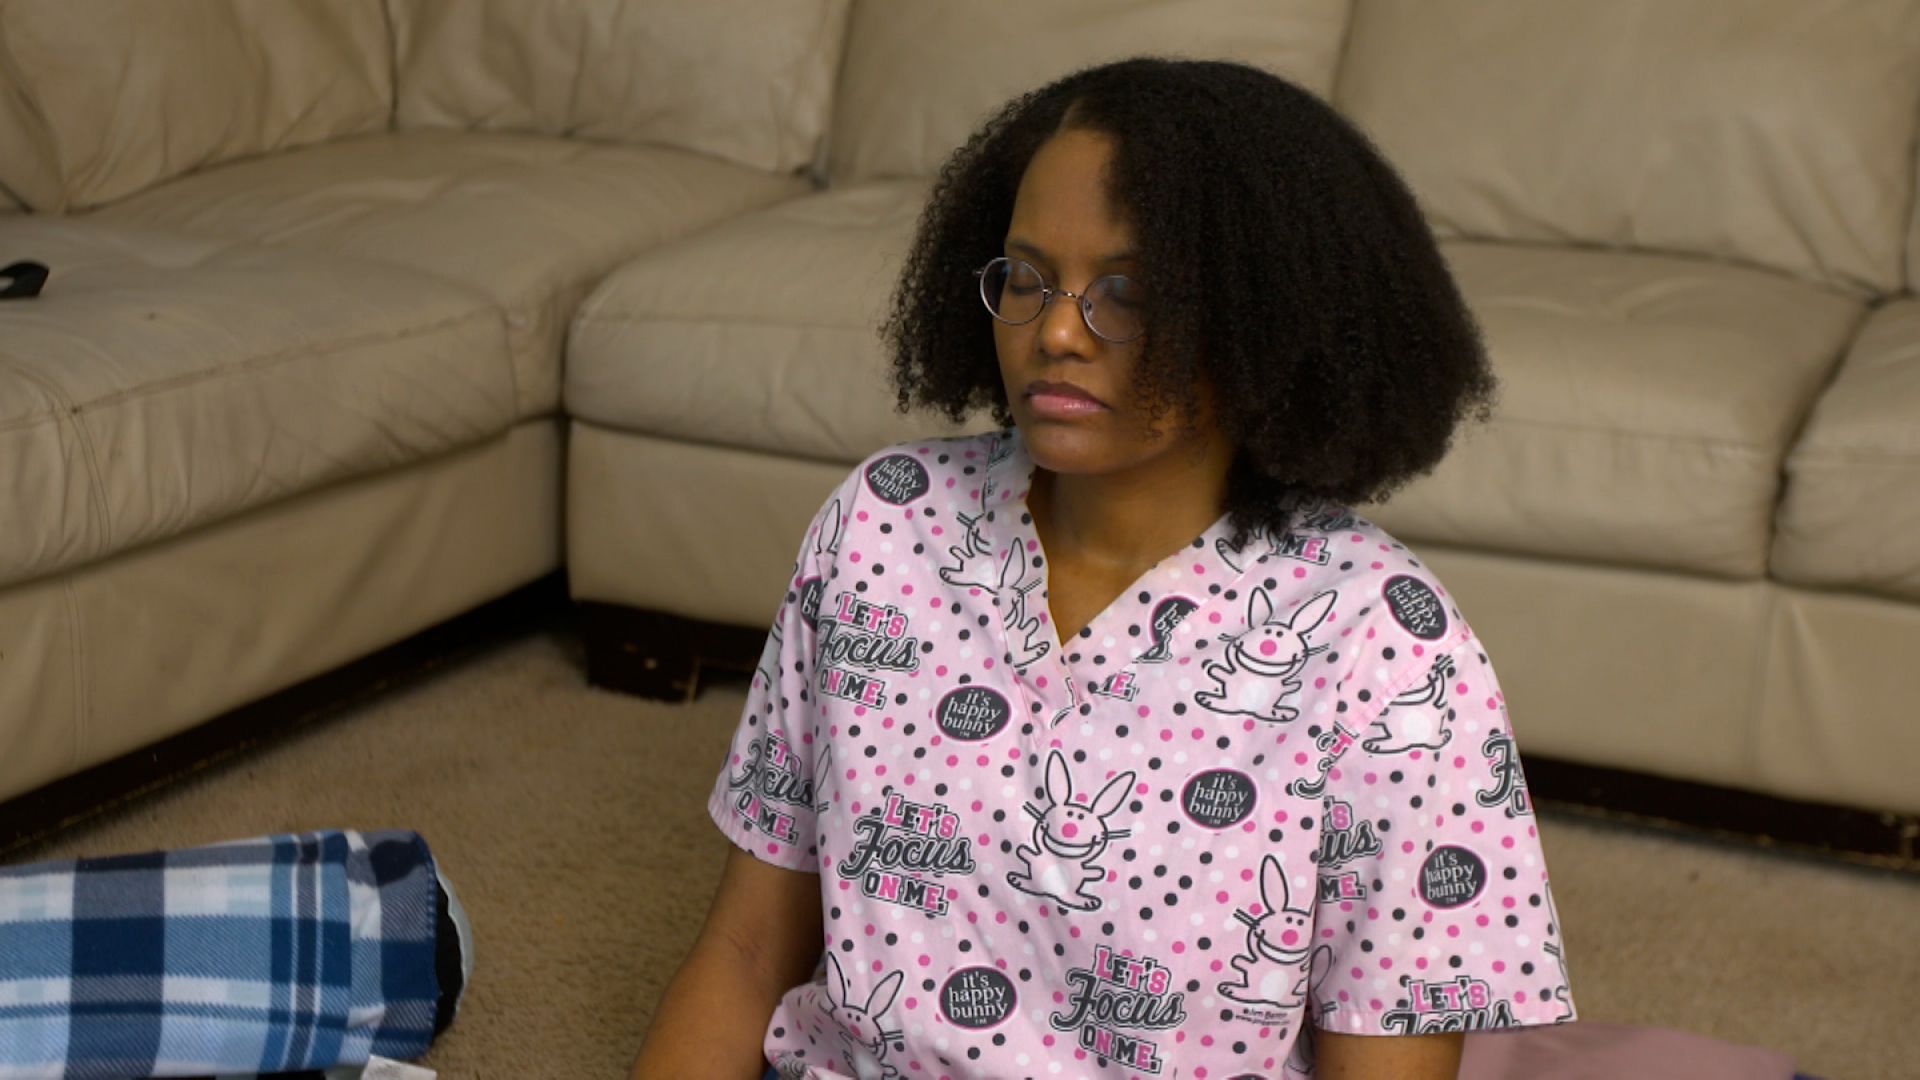 Sickle cell scientist fights for a cure for herself and others